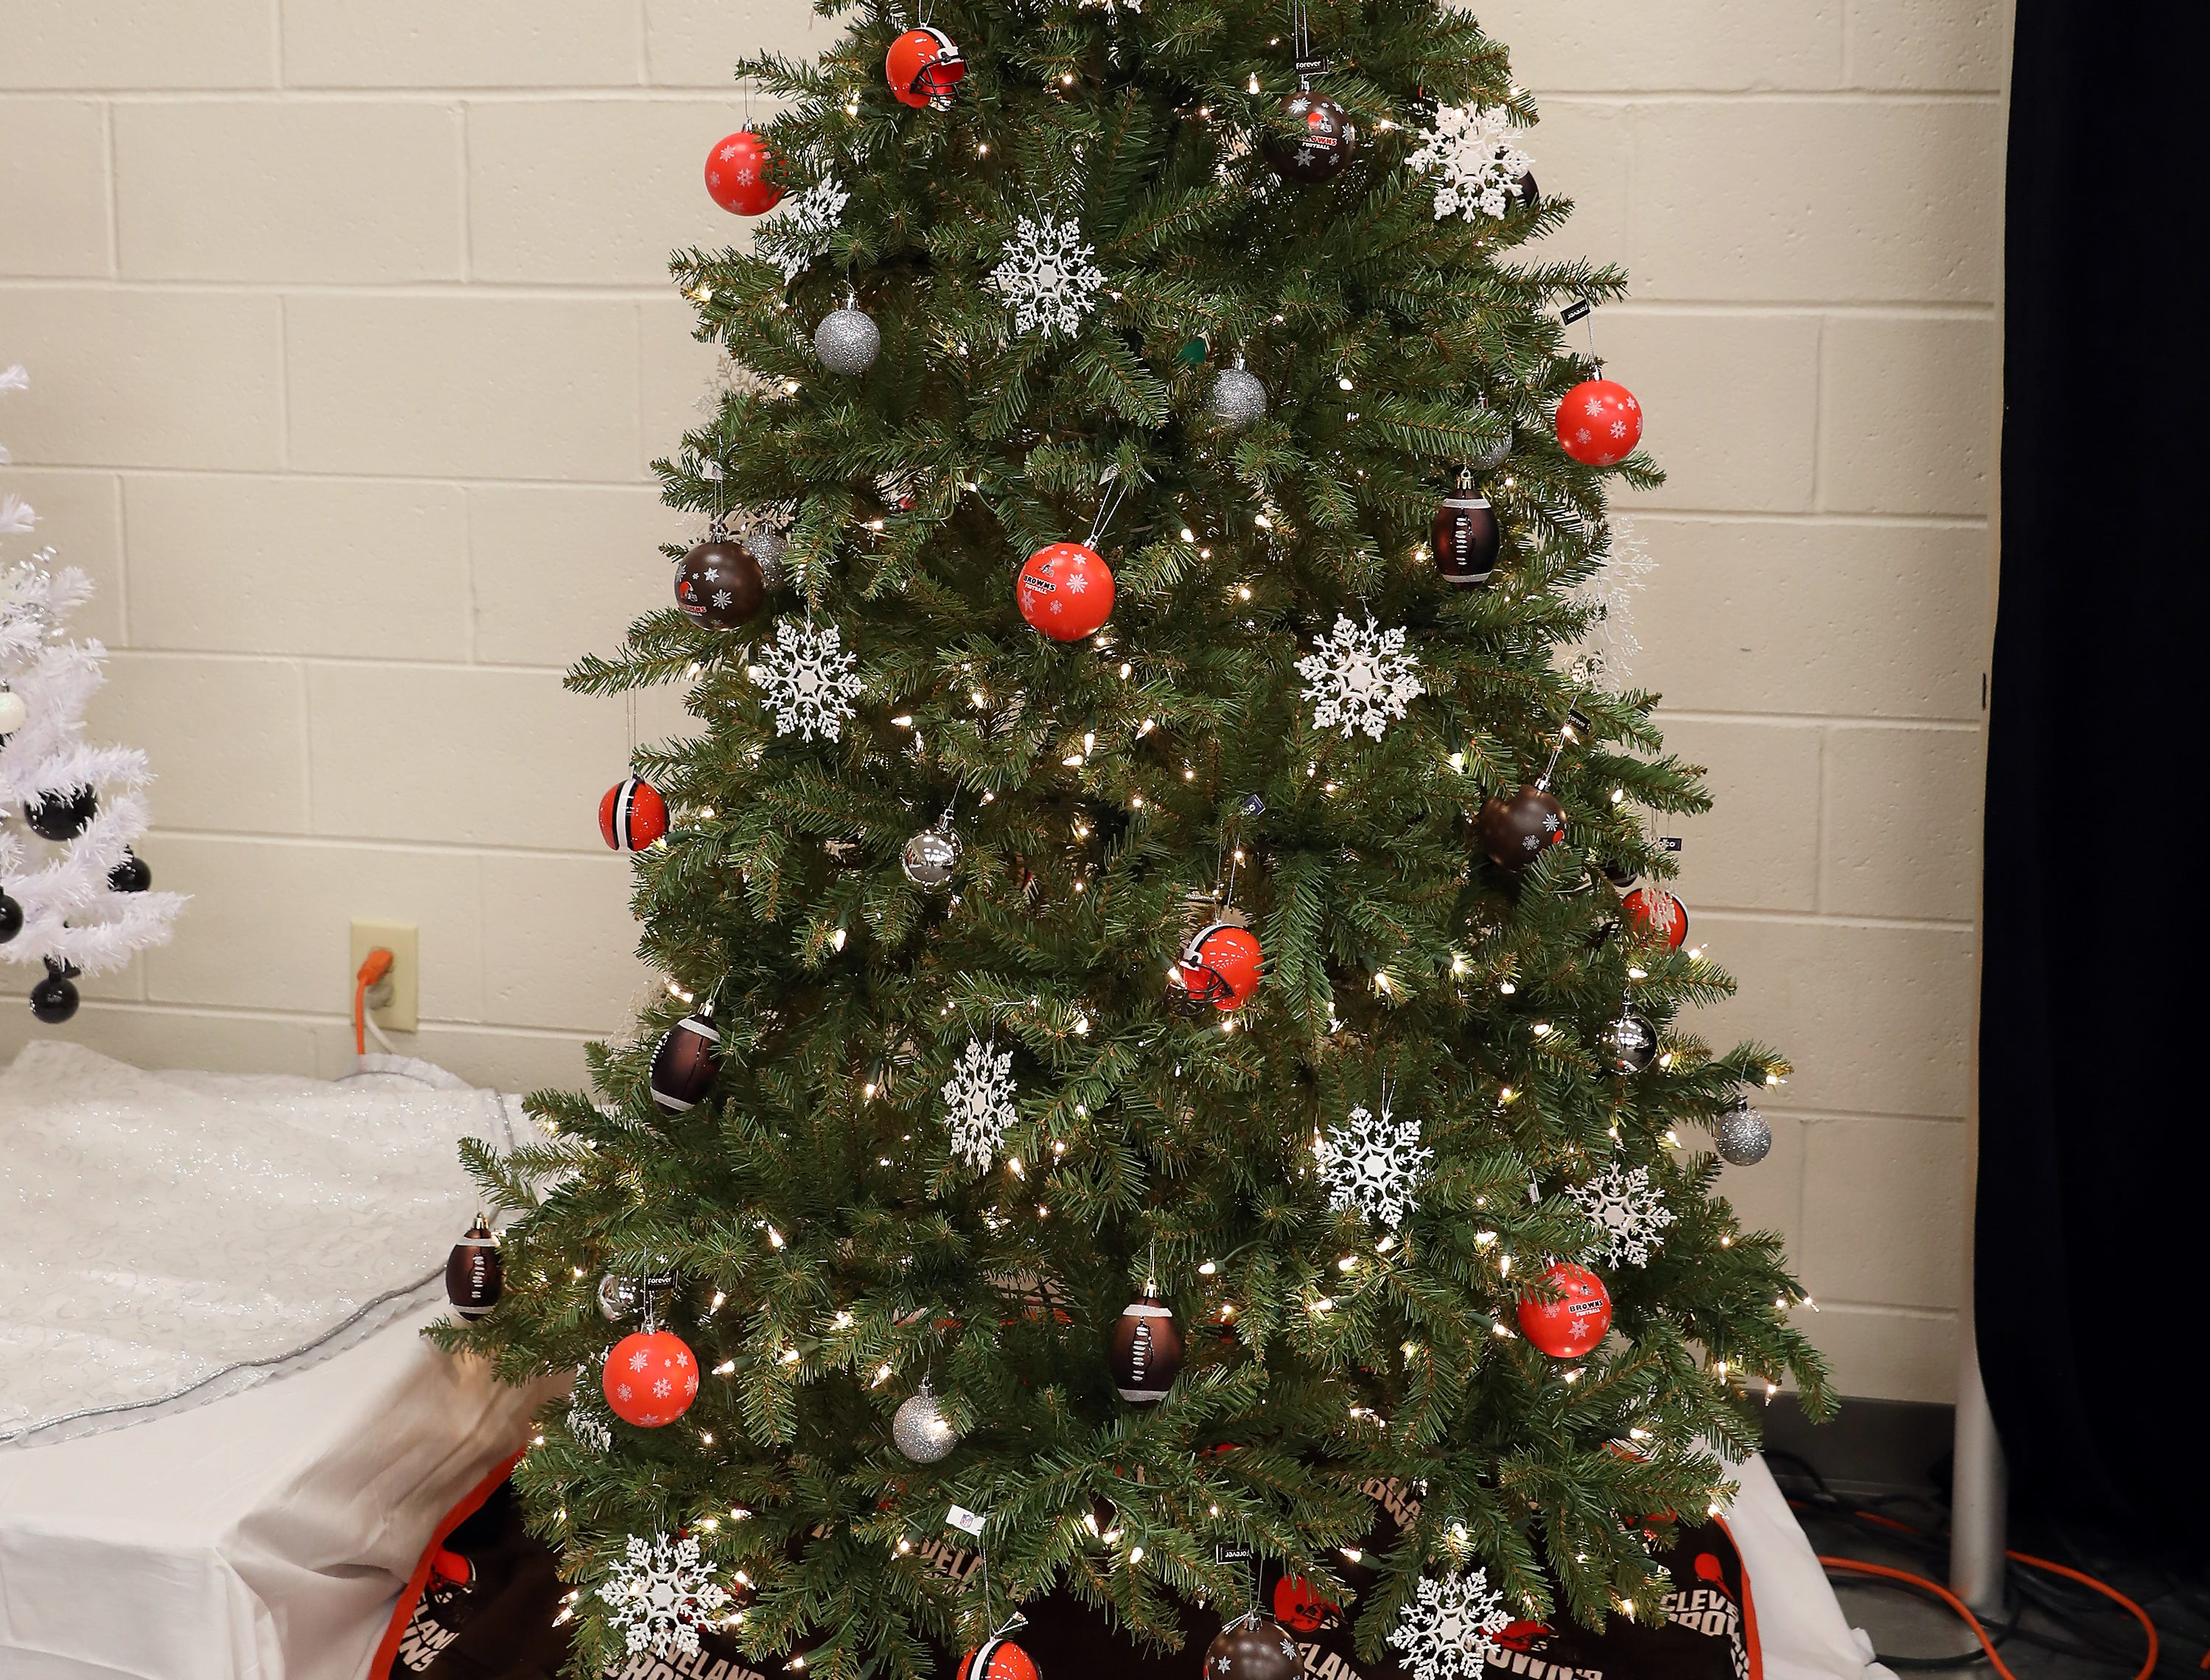 """2105:15 PMFanaticsLarge TreeCleveland Browns6' 5"""" pre-lit Christmas tree decorated to the nines with Cleveland Browns adornments.Perfect gift package for any Cleveland Browns fan!  Package is made up of accessories and apparel, flags, backpack, bankets, Baker Mayfield jersey and more!"""